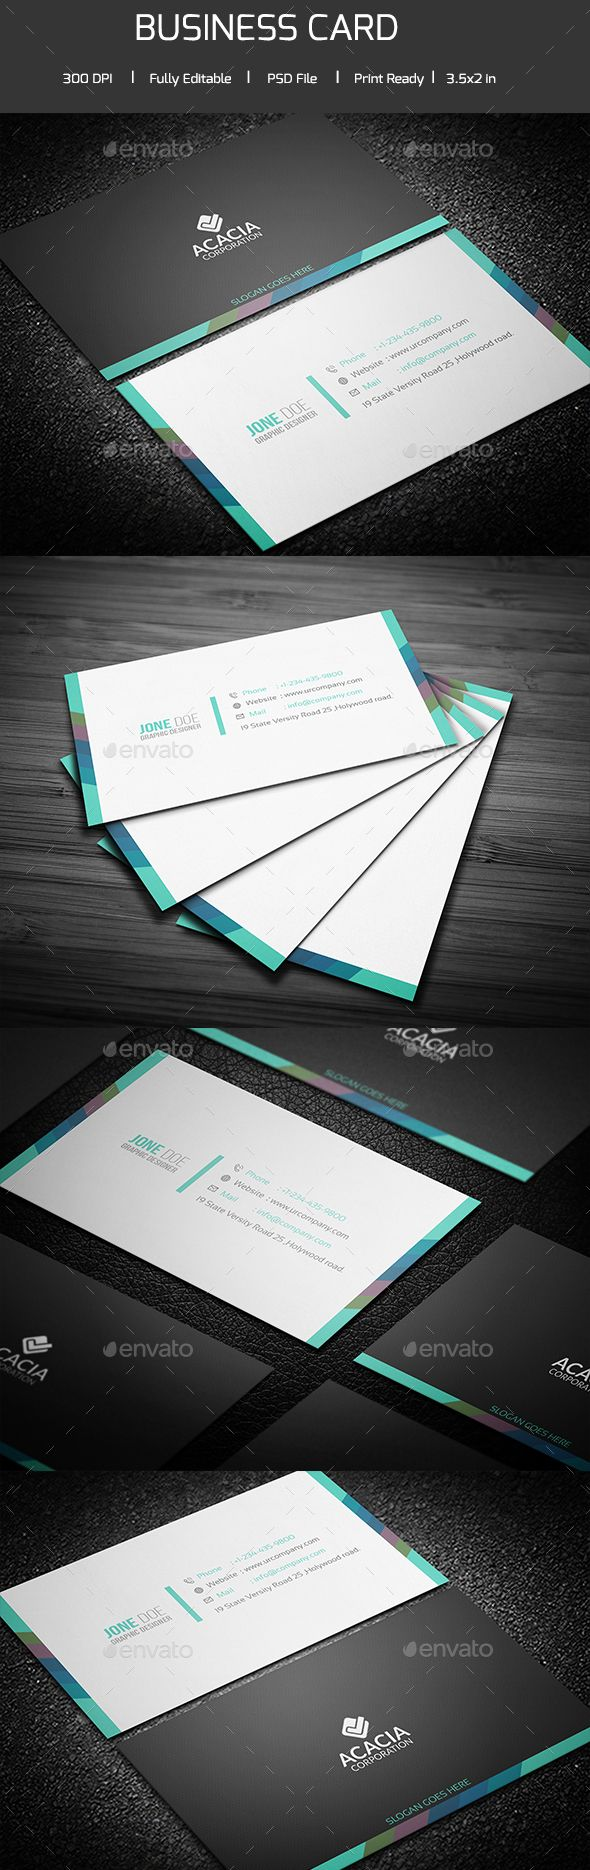 Simple and Clean Business Card Template PSD #design Download: http://graphicriver.net/item/simple-and-clean-business-card-v04/13757056?ref=ksioks